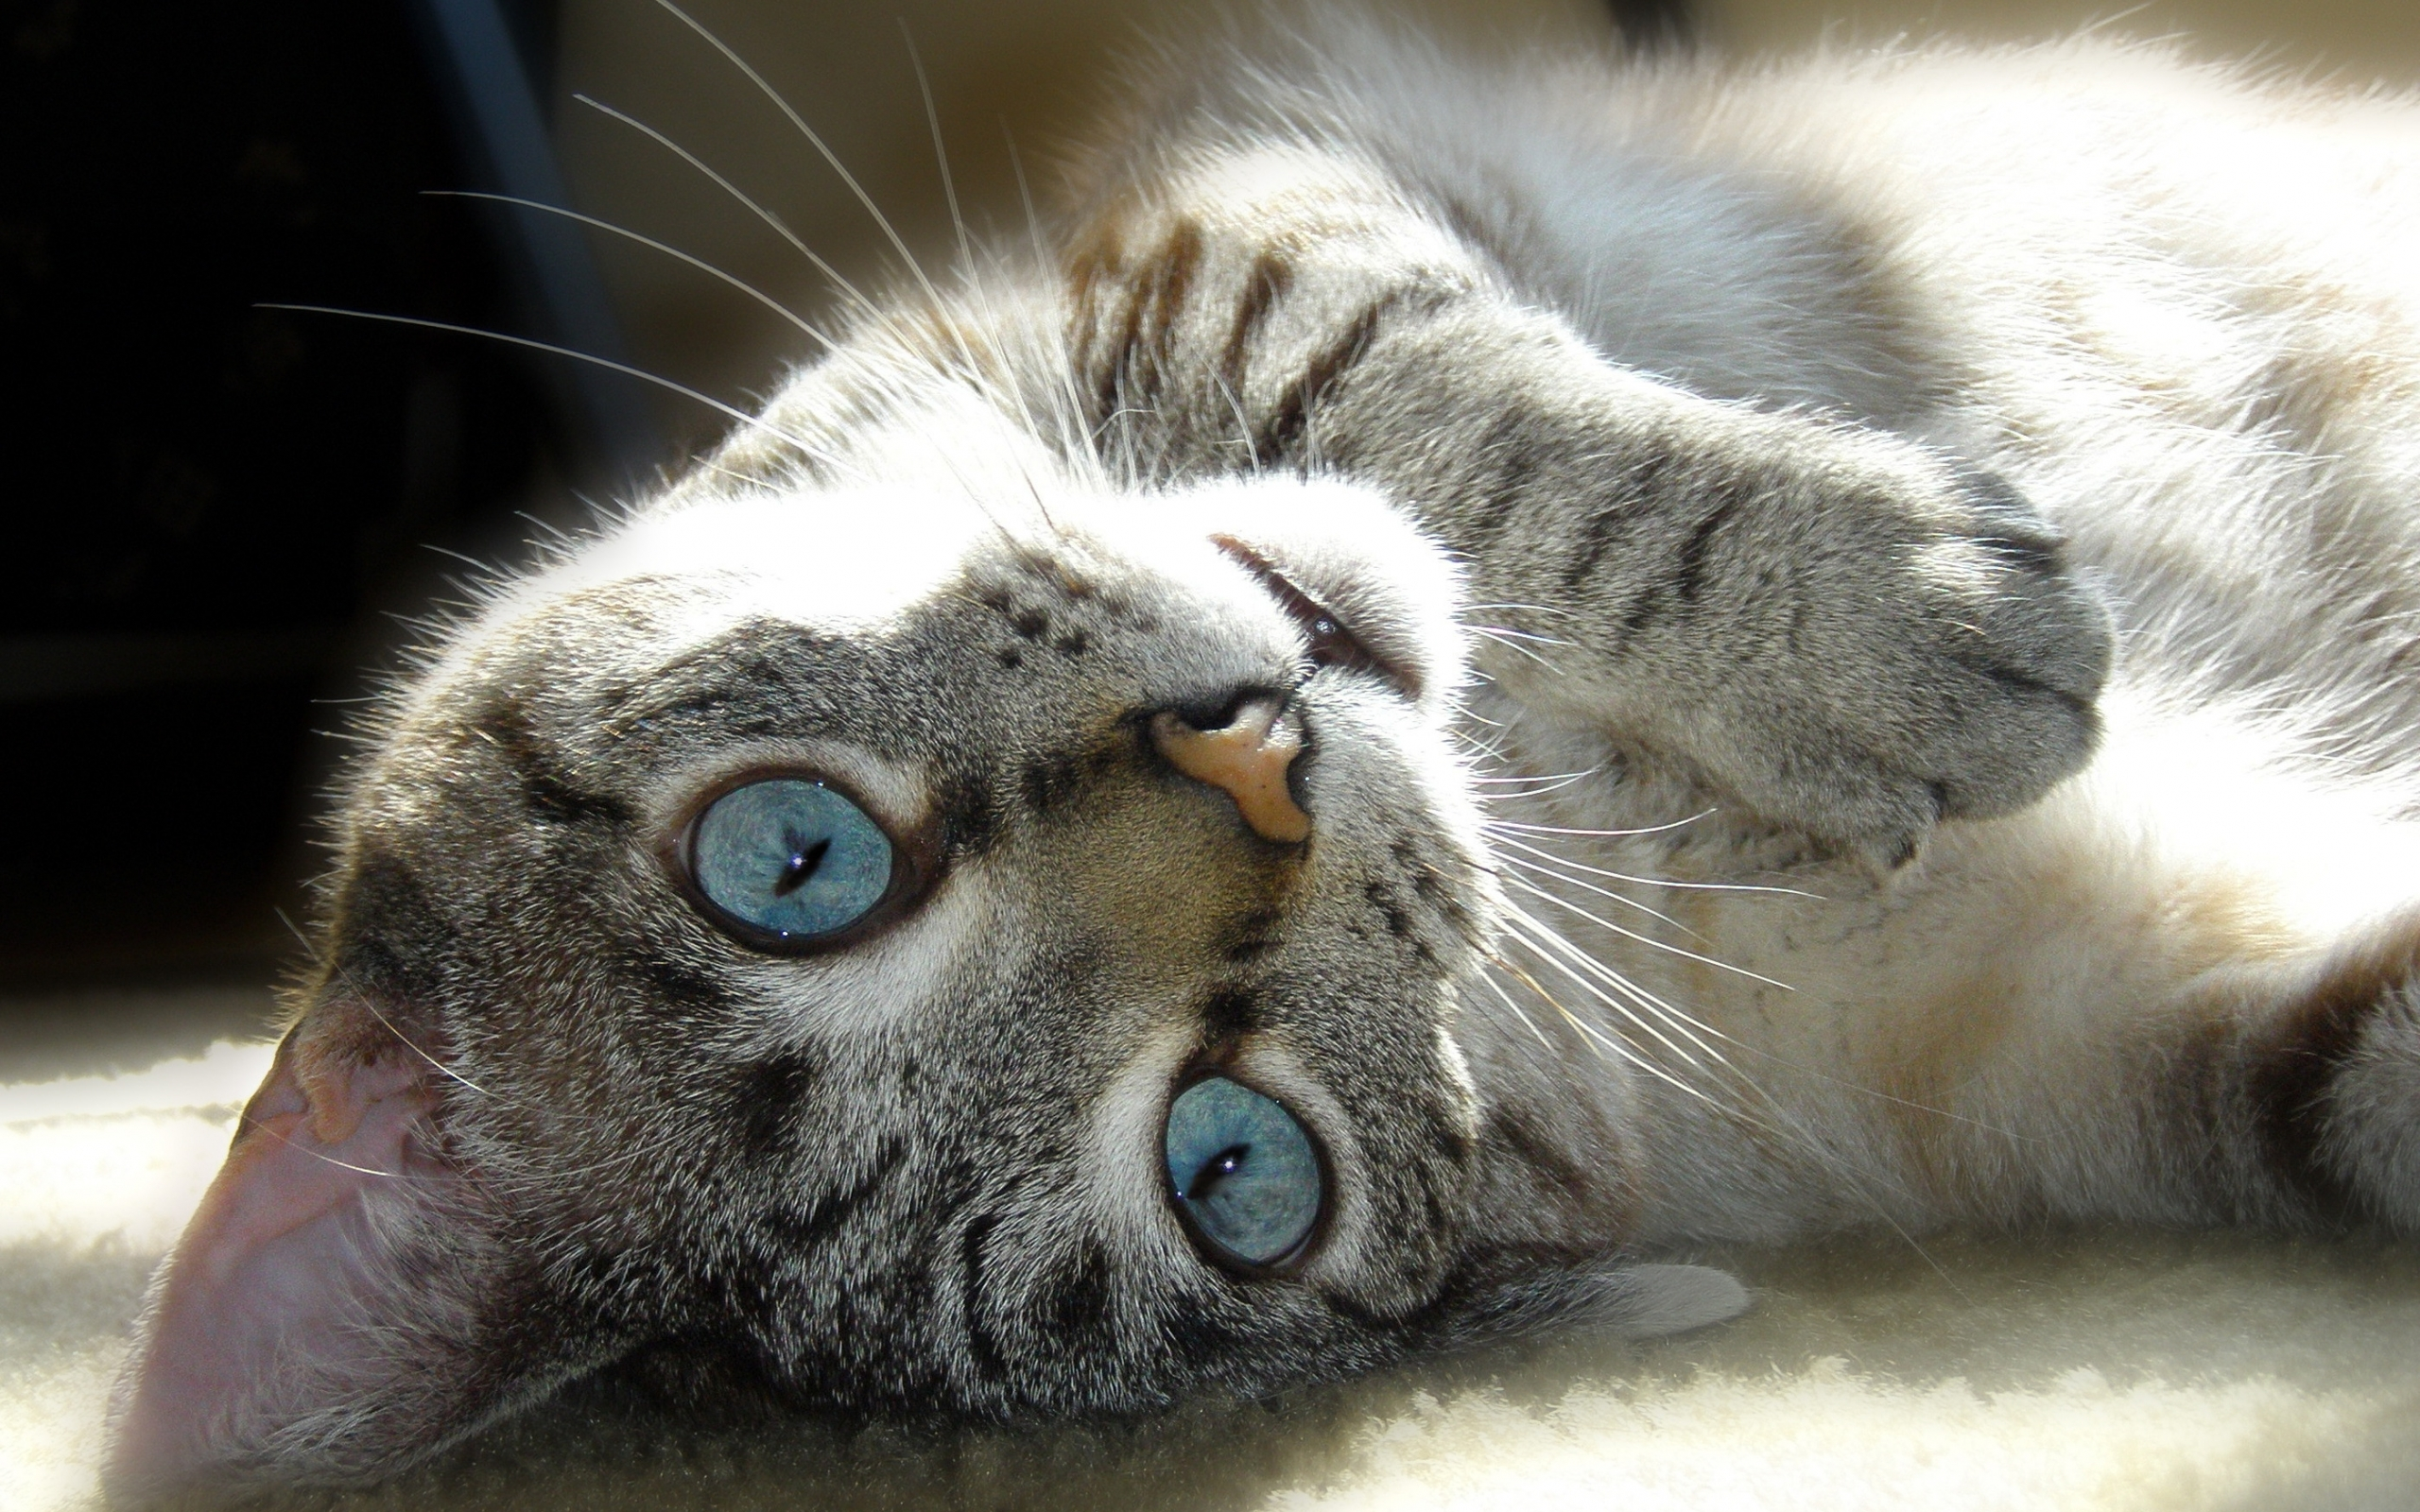 49712 download wallpaper Animals, Cats screensavers and pictures for free